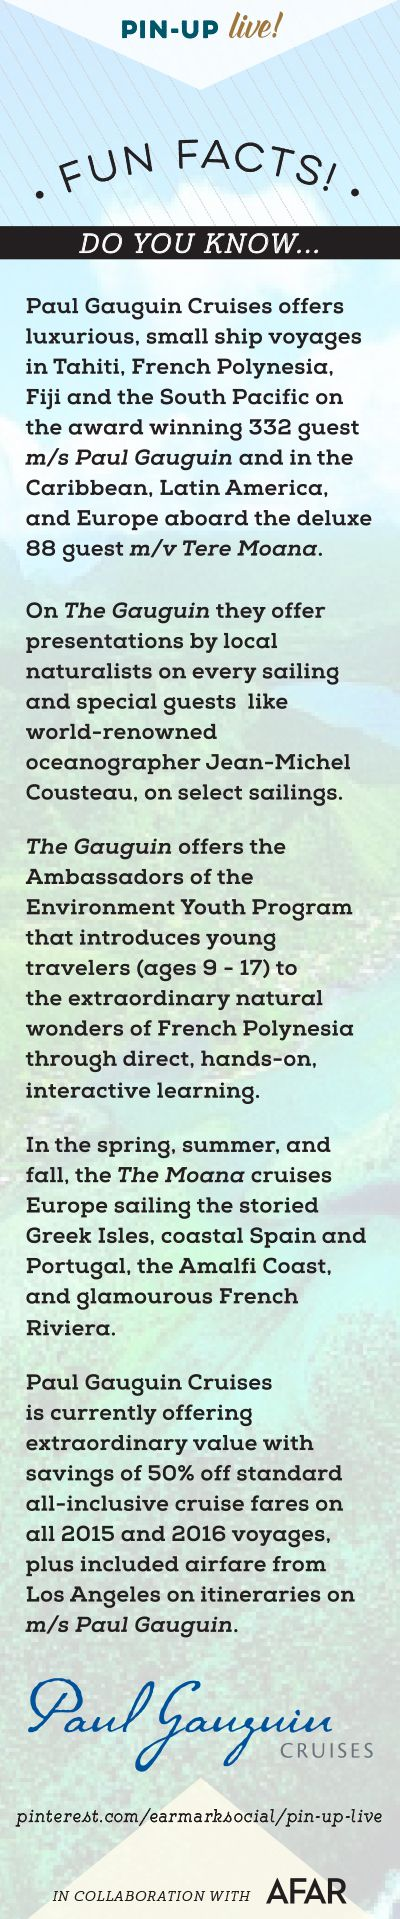 Hello everyone! Let's learn a few fun facts about our guest host Paul Gauguin Cruises... #pinuplive